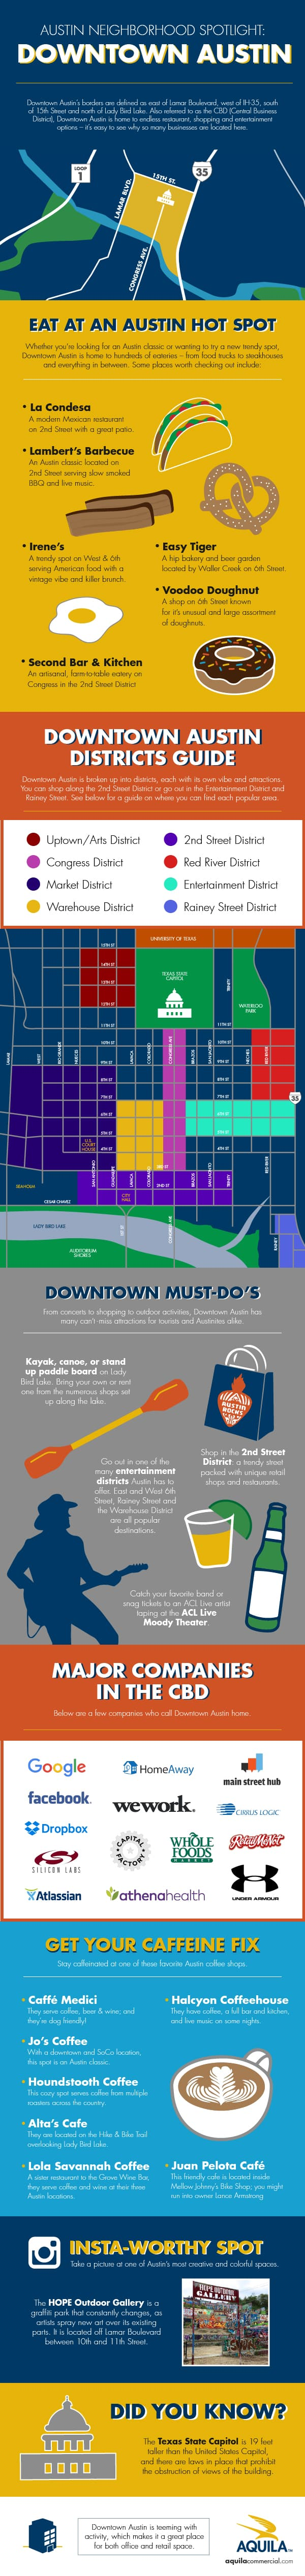 Downtown Austin, Texas Infographic: What to do and where to eat in Austin's Downtown neighborhood.